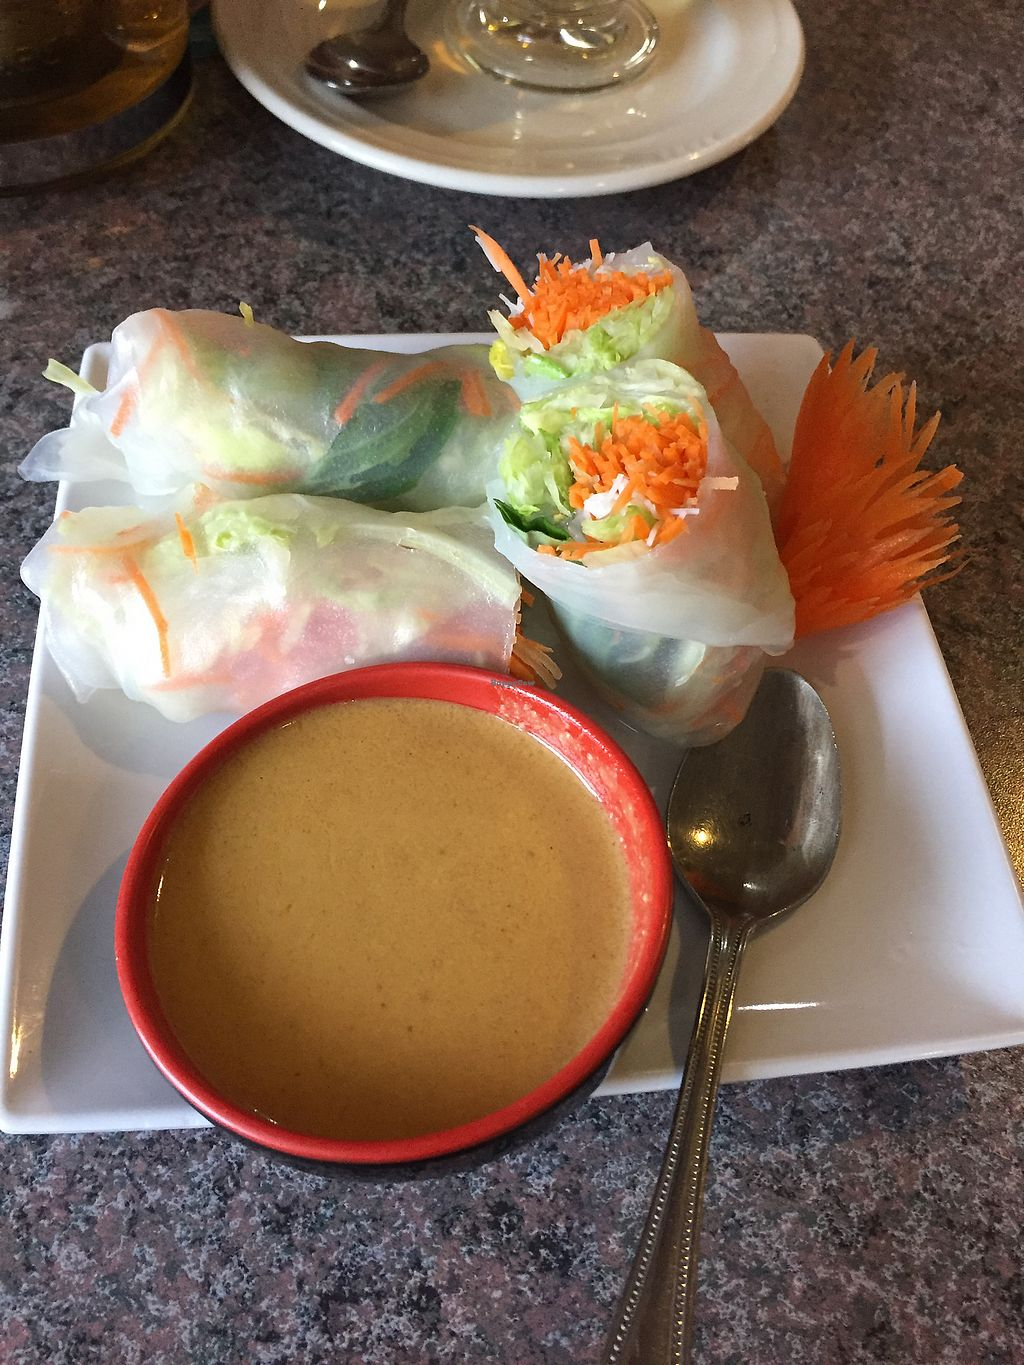 """Photo of A Mighty Thai  by <a href=""""/members/profile/shamington"""">shamington</a> <br/>Fresh rolls- veggie <br/> May 14, 2018  - <a href='/contact/abuse/image/113961/399428'>Report</a>"""